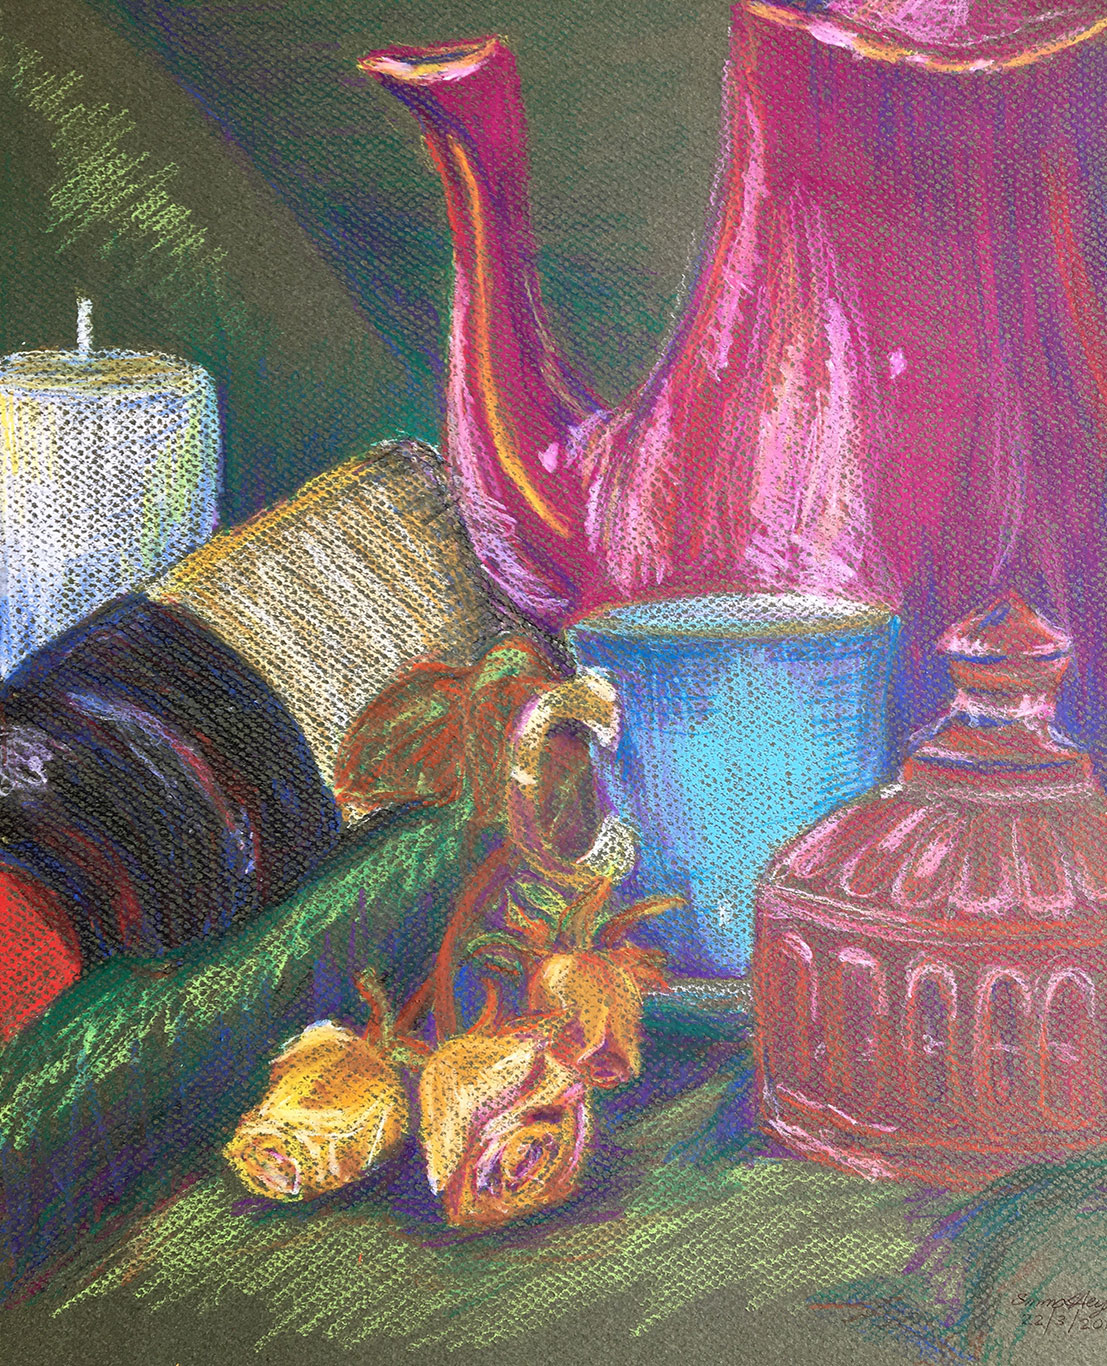 Crayon Still Life Drawing by Emma Heyes